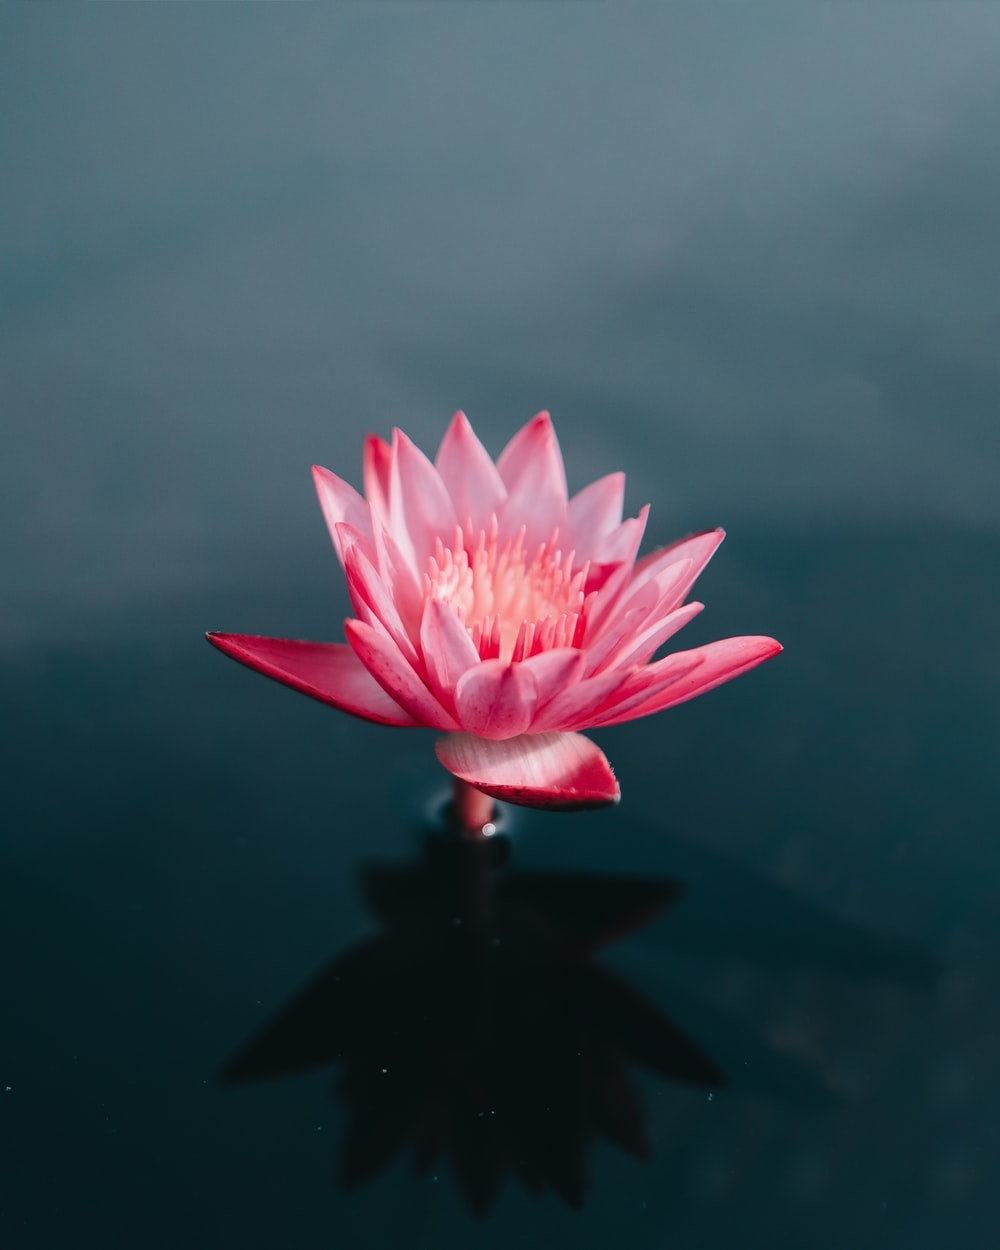 pink flowers on body of water